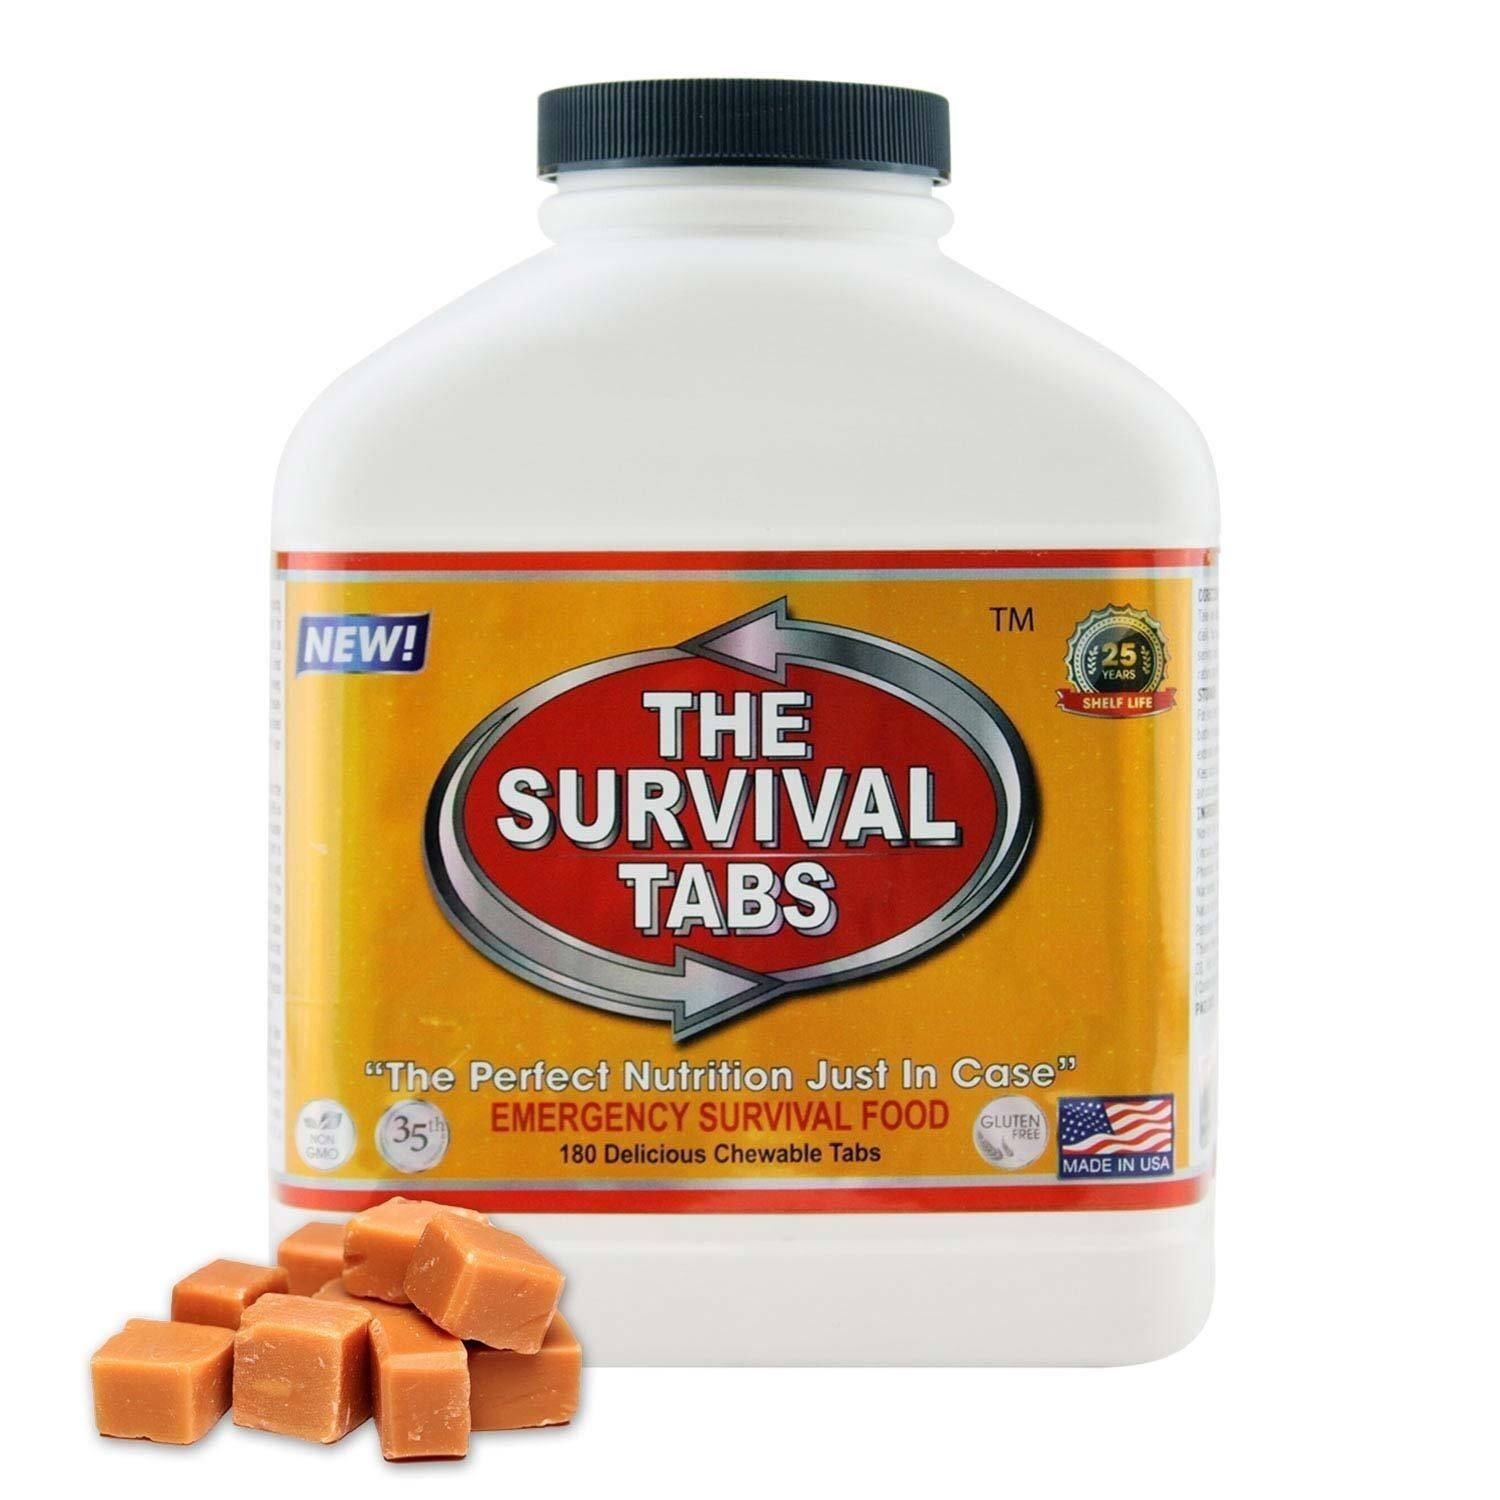 Emergency Food Predein Substitute Survival Tabs 180 Butterscotch Flavor 25 years